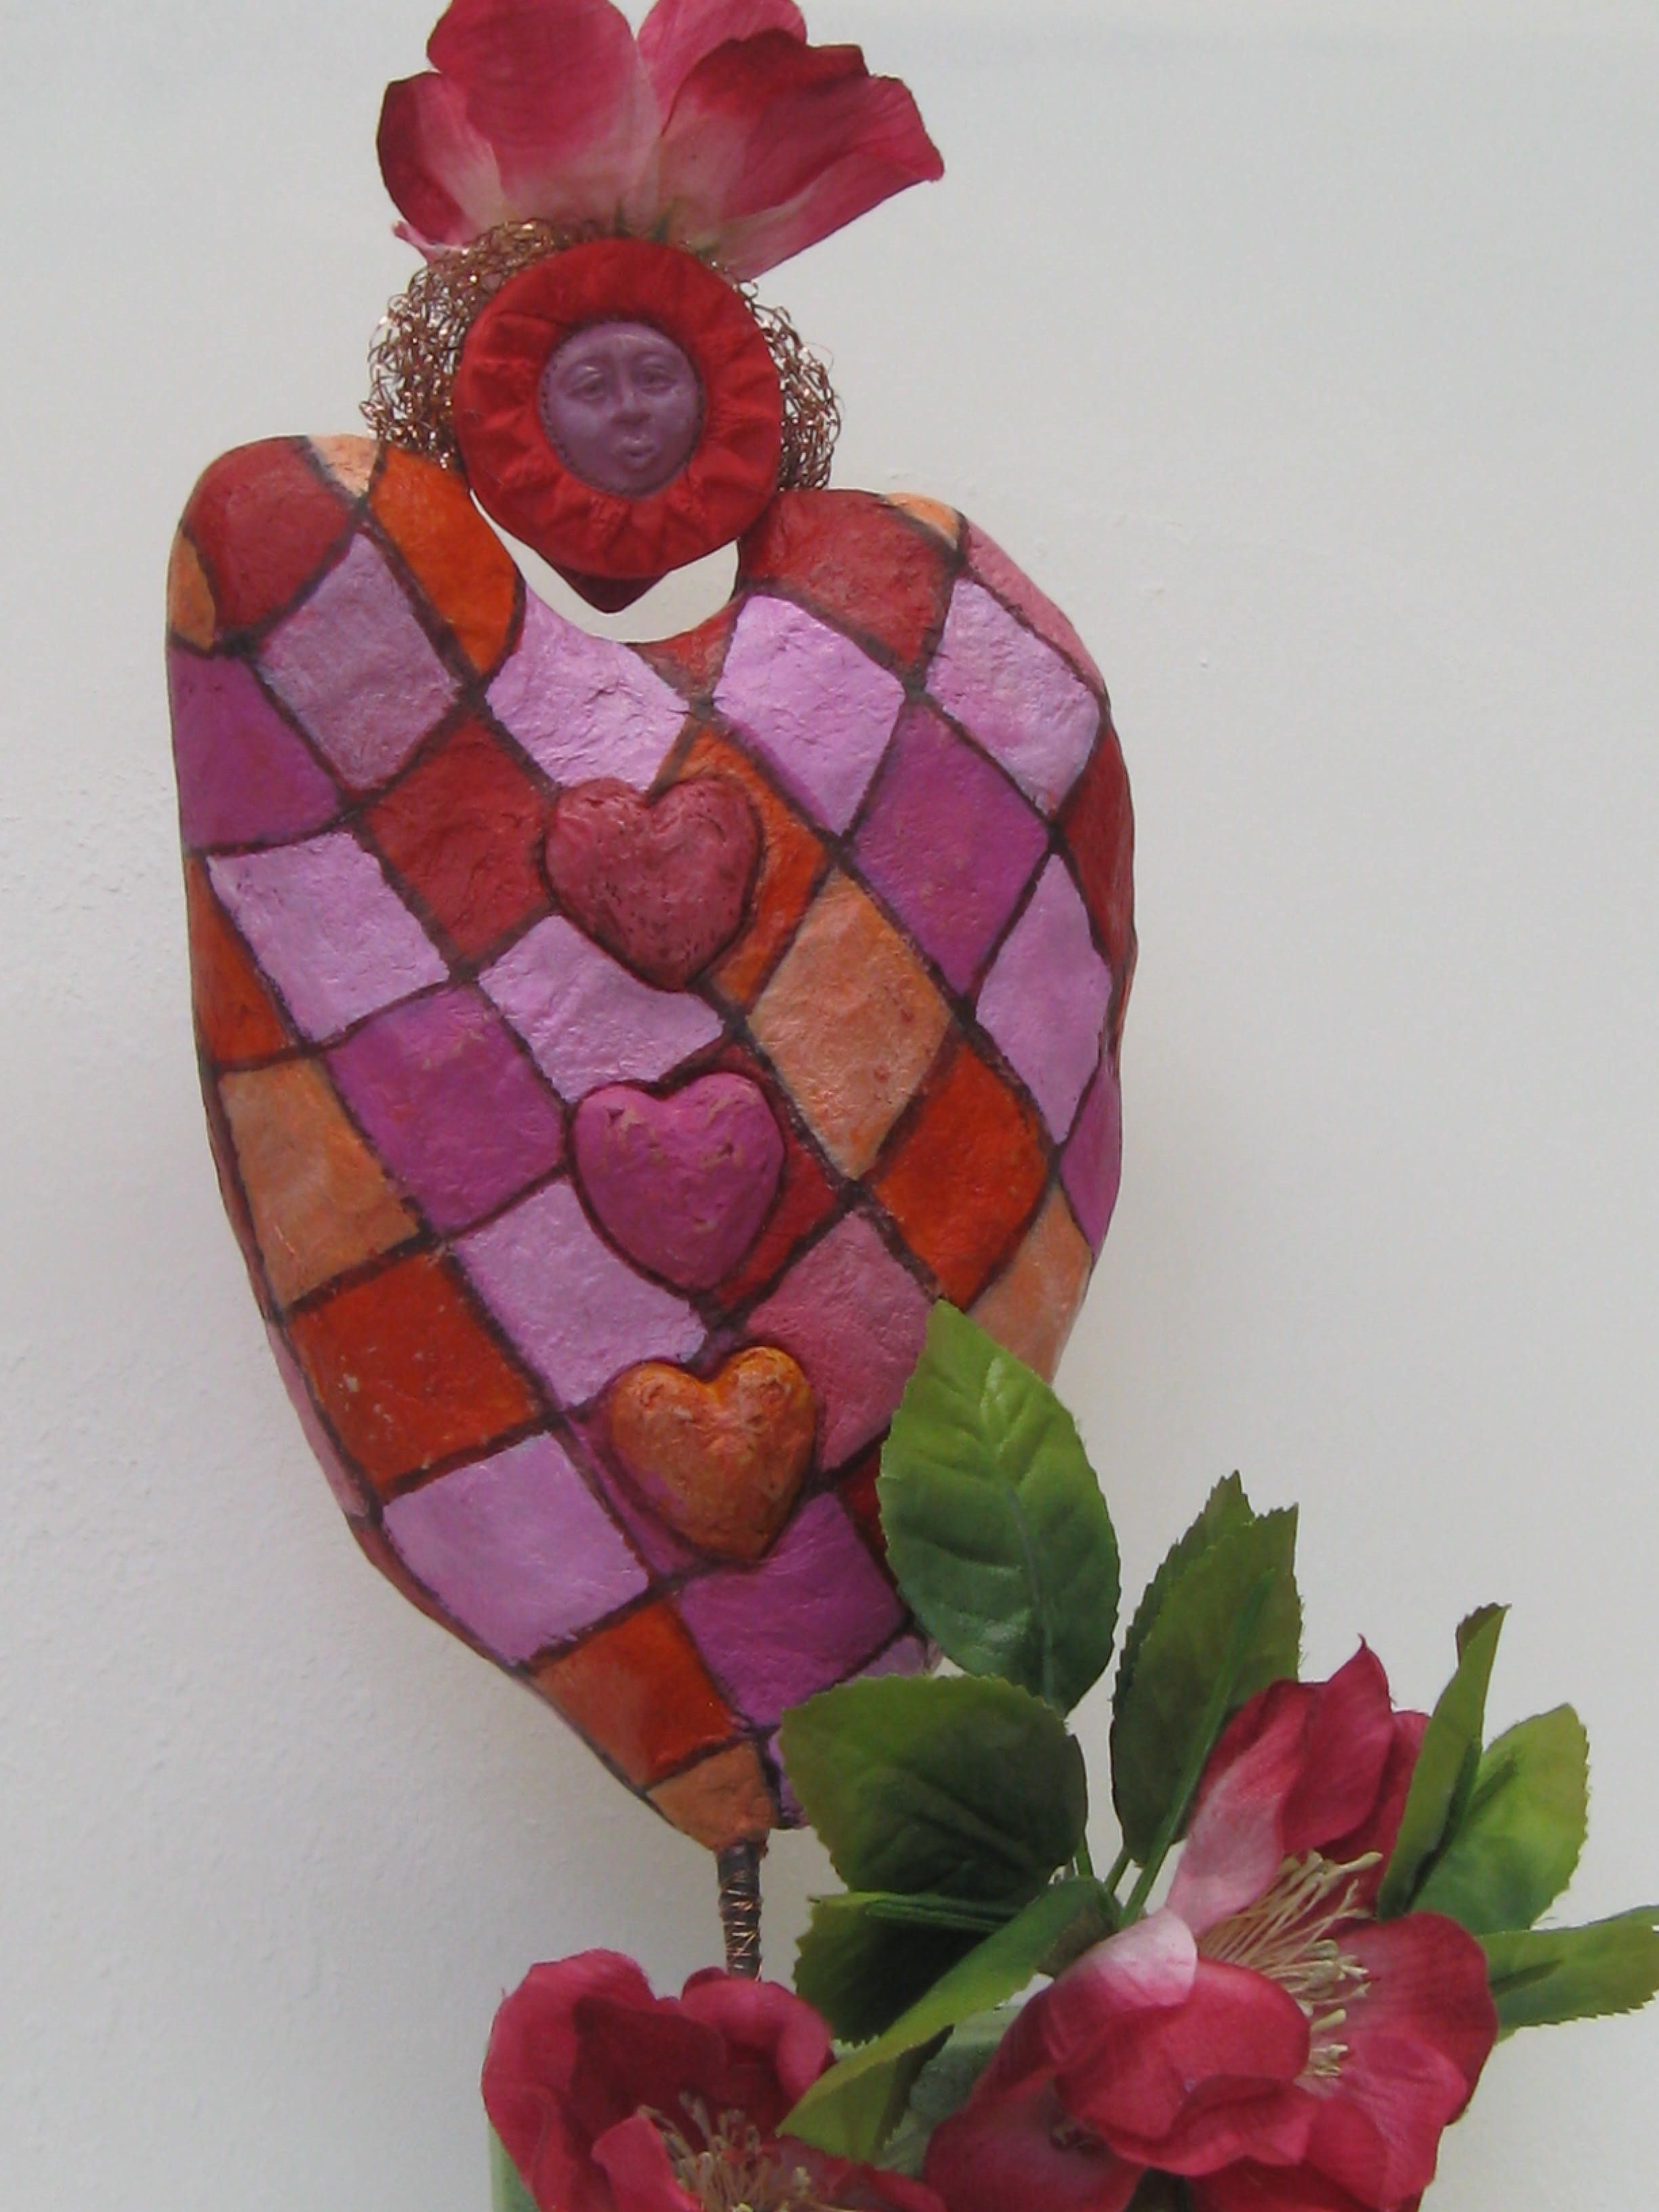 In progress : staged Queen of hearts   papier maché clay  sculpture Feb 2012